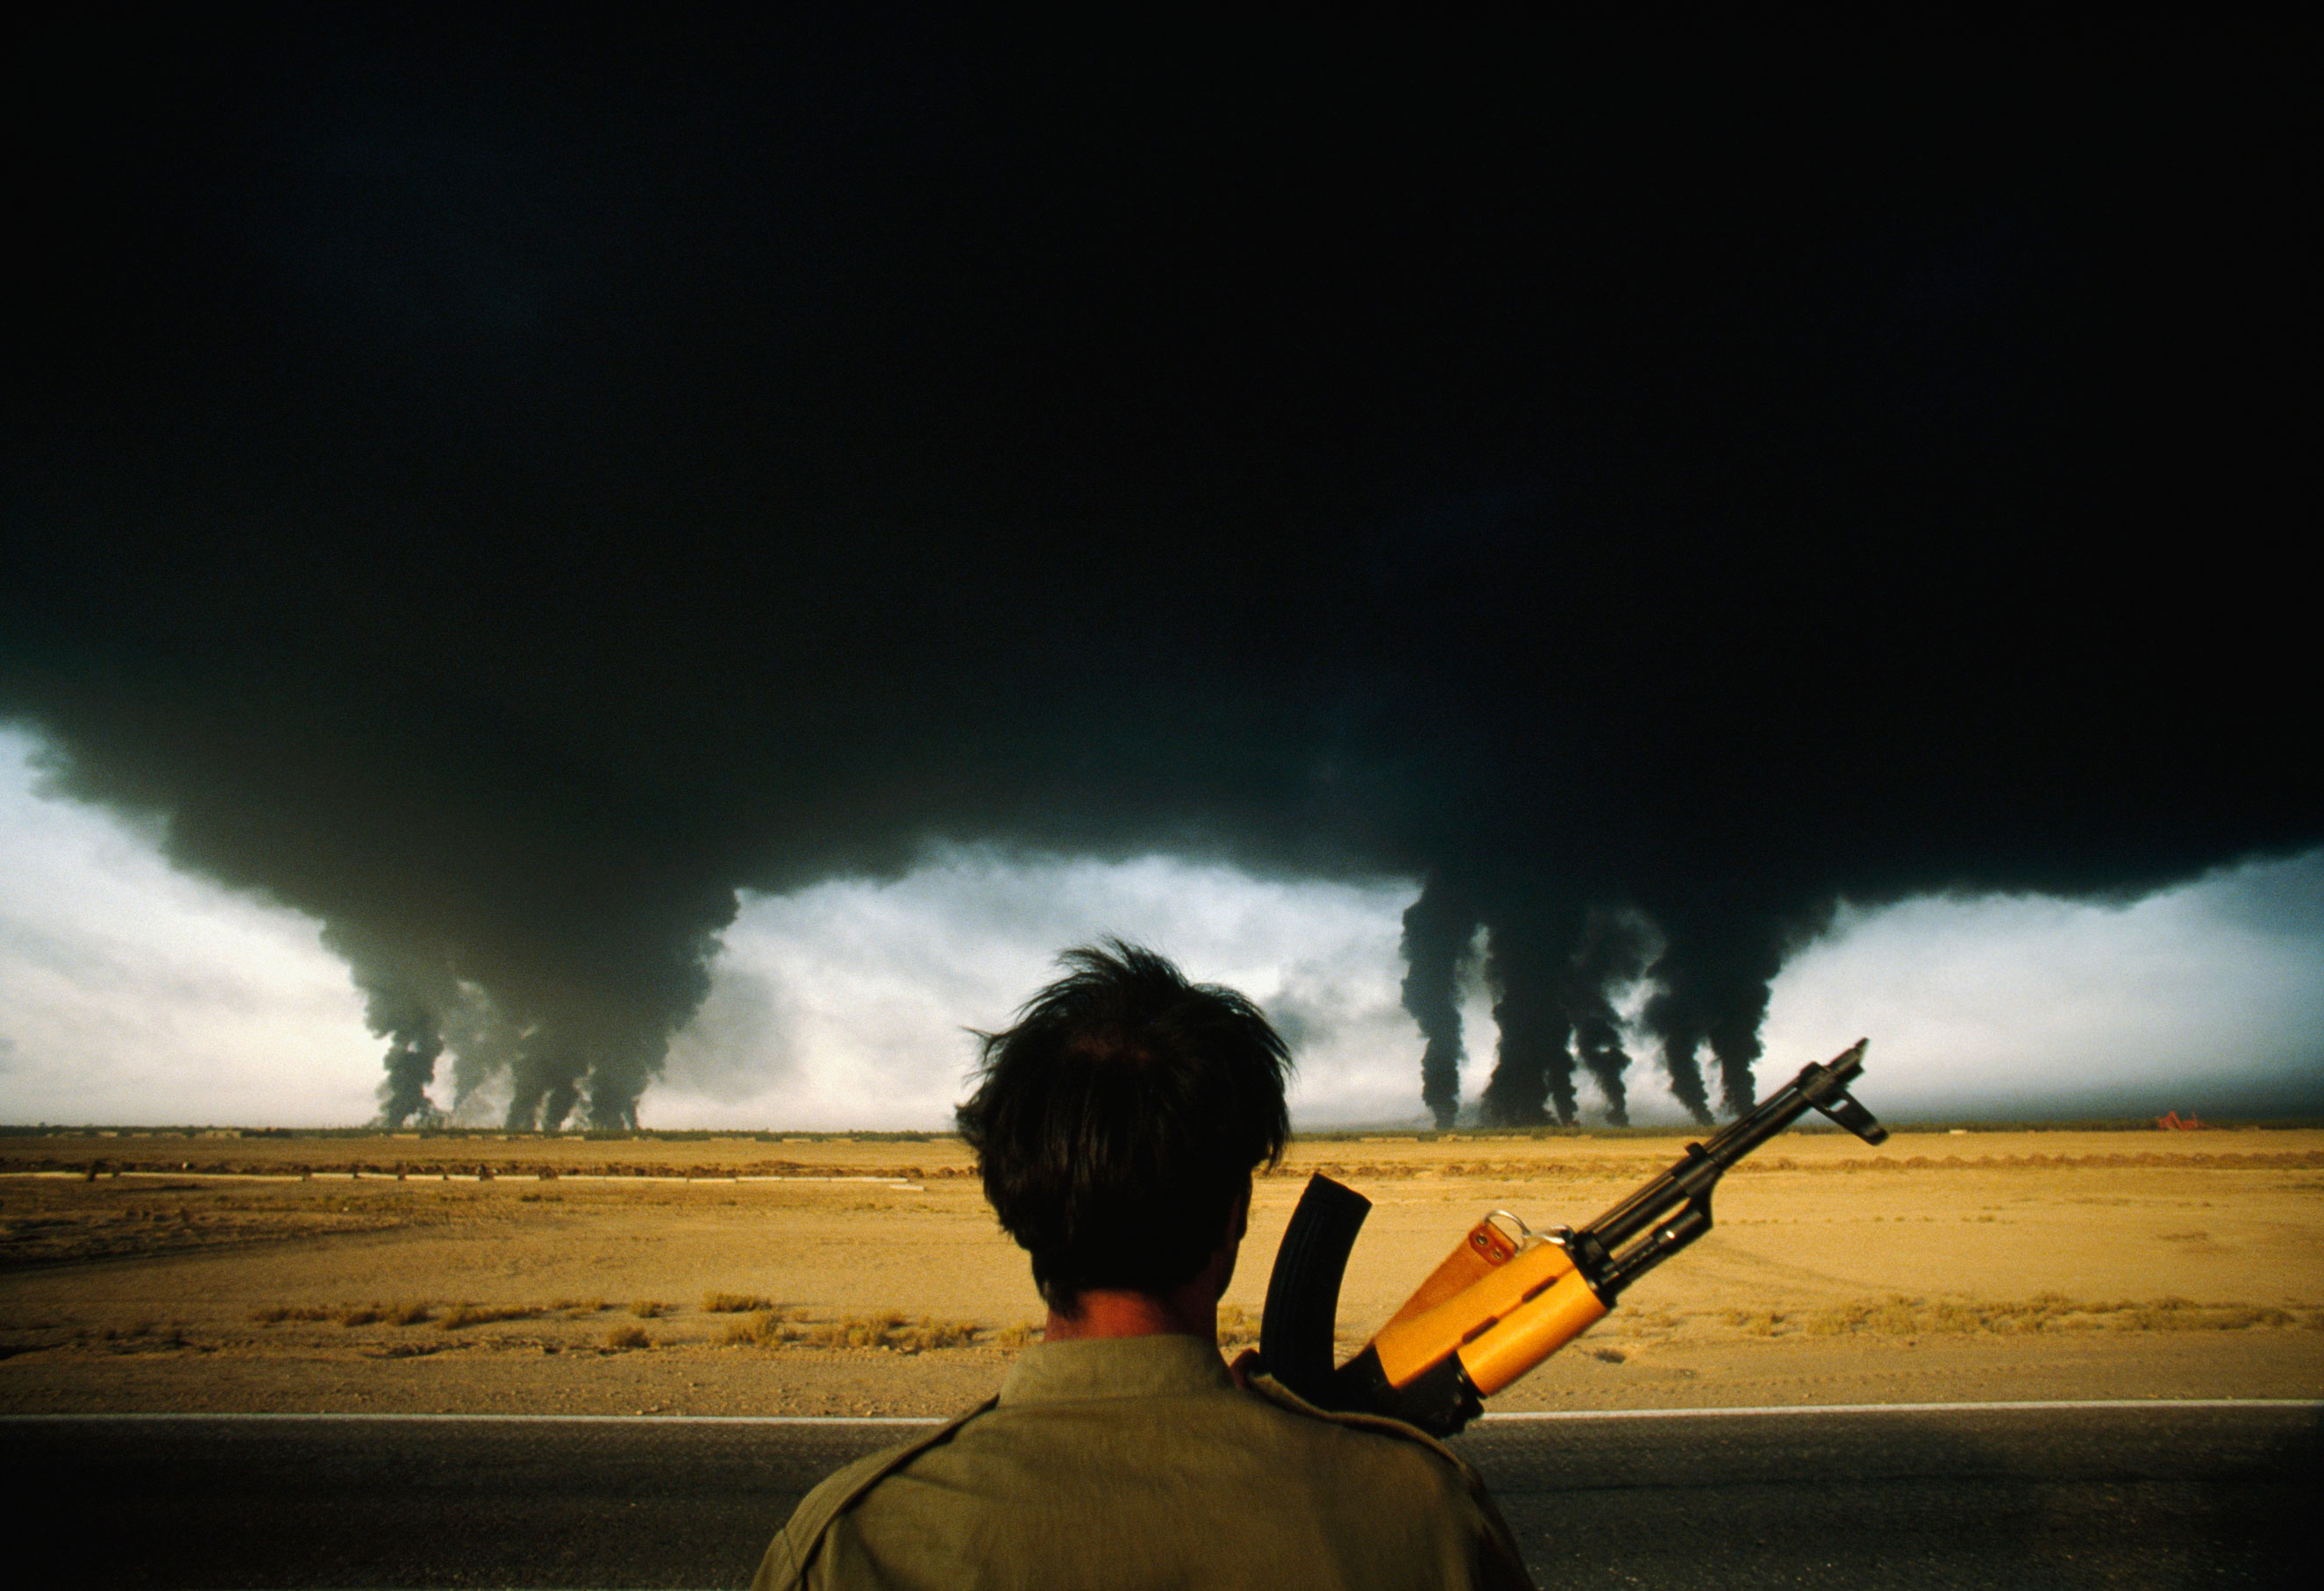 An Iranian soldier watches as smoke billows from multiple burning oil refineries in Abadan, Iran on Sept. 27, 1980.